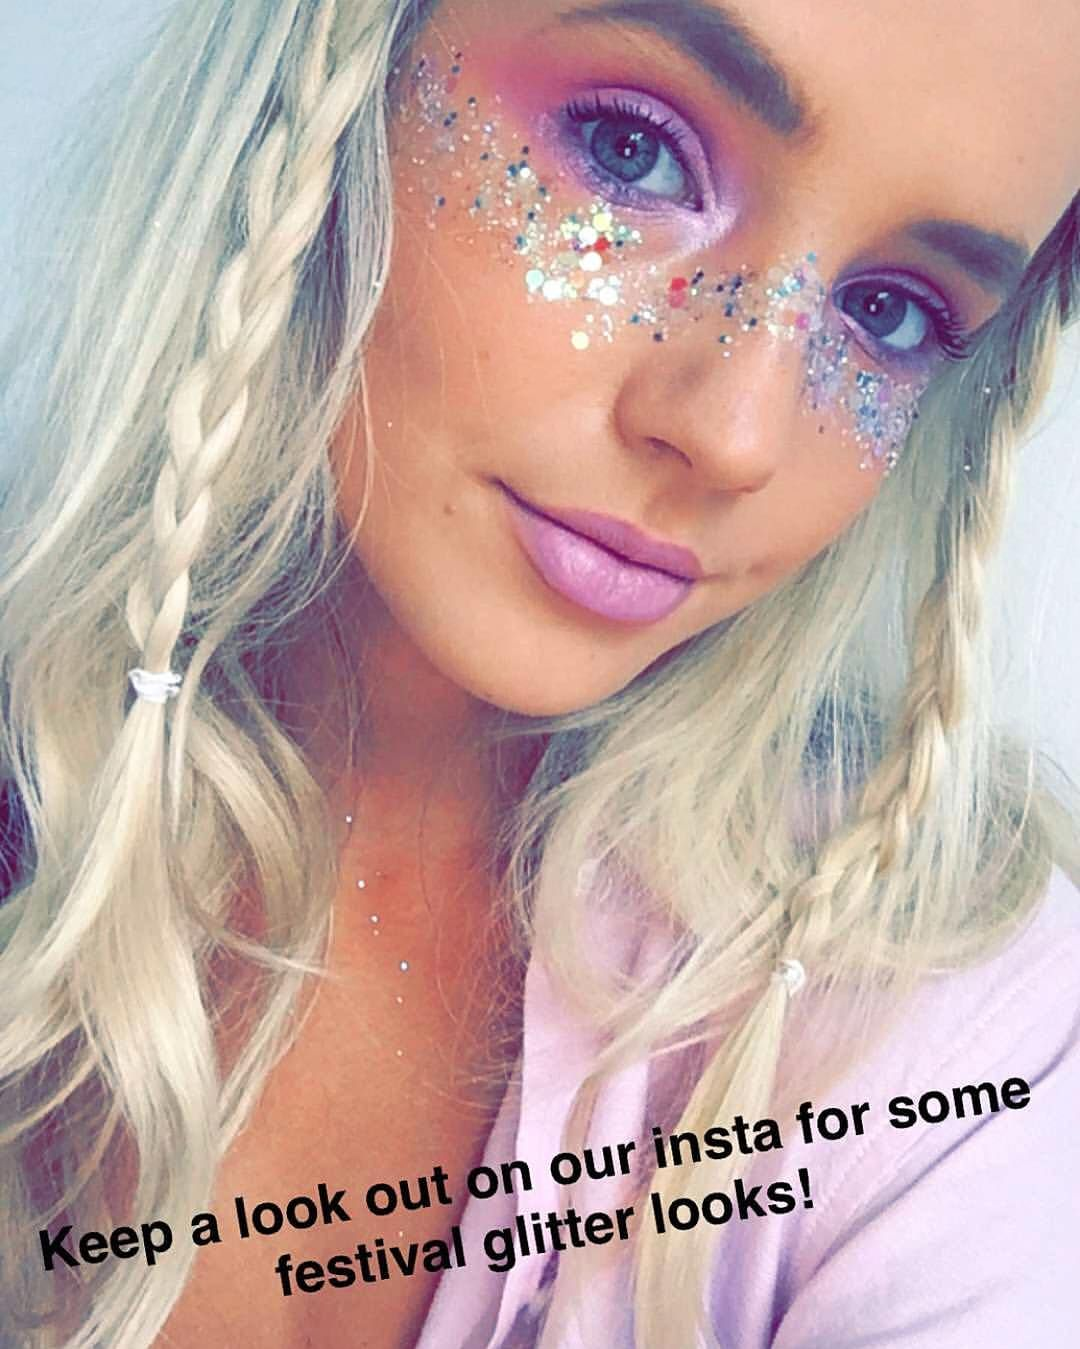 pinterest wifi0n spirit day inspo pinterest rave mua shouting themselves out pinterest wifi0n ccuart Images